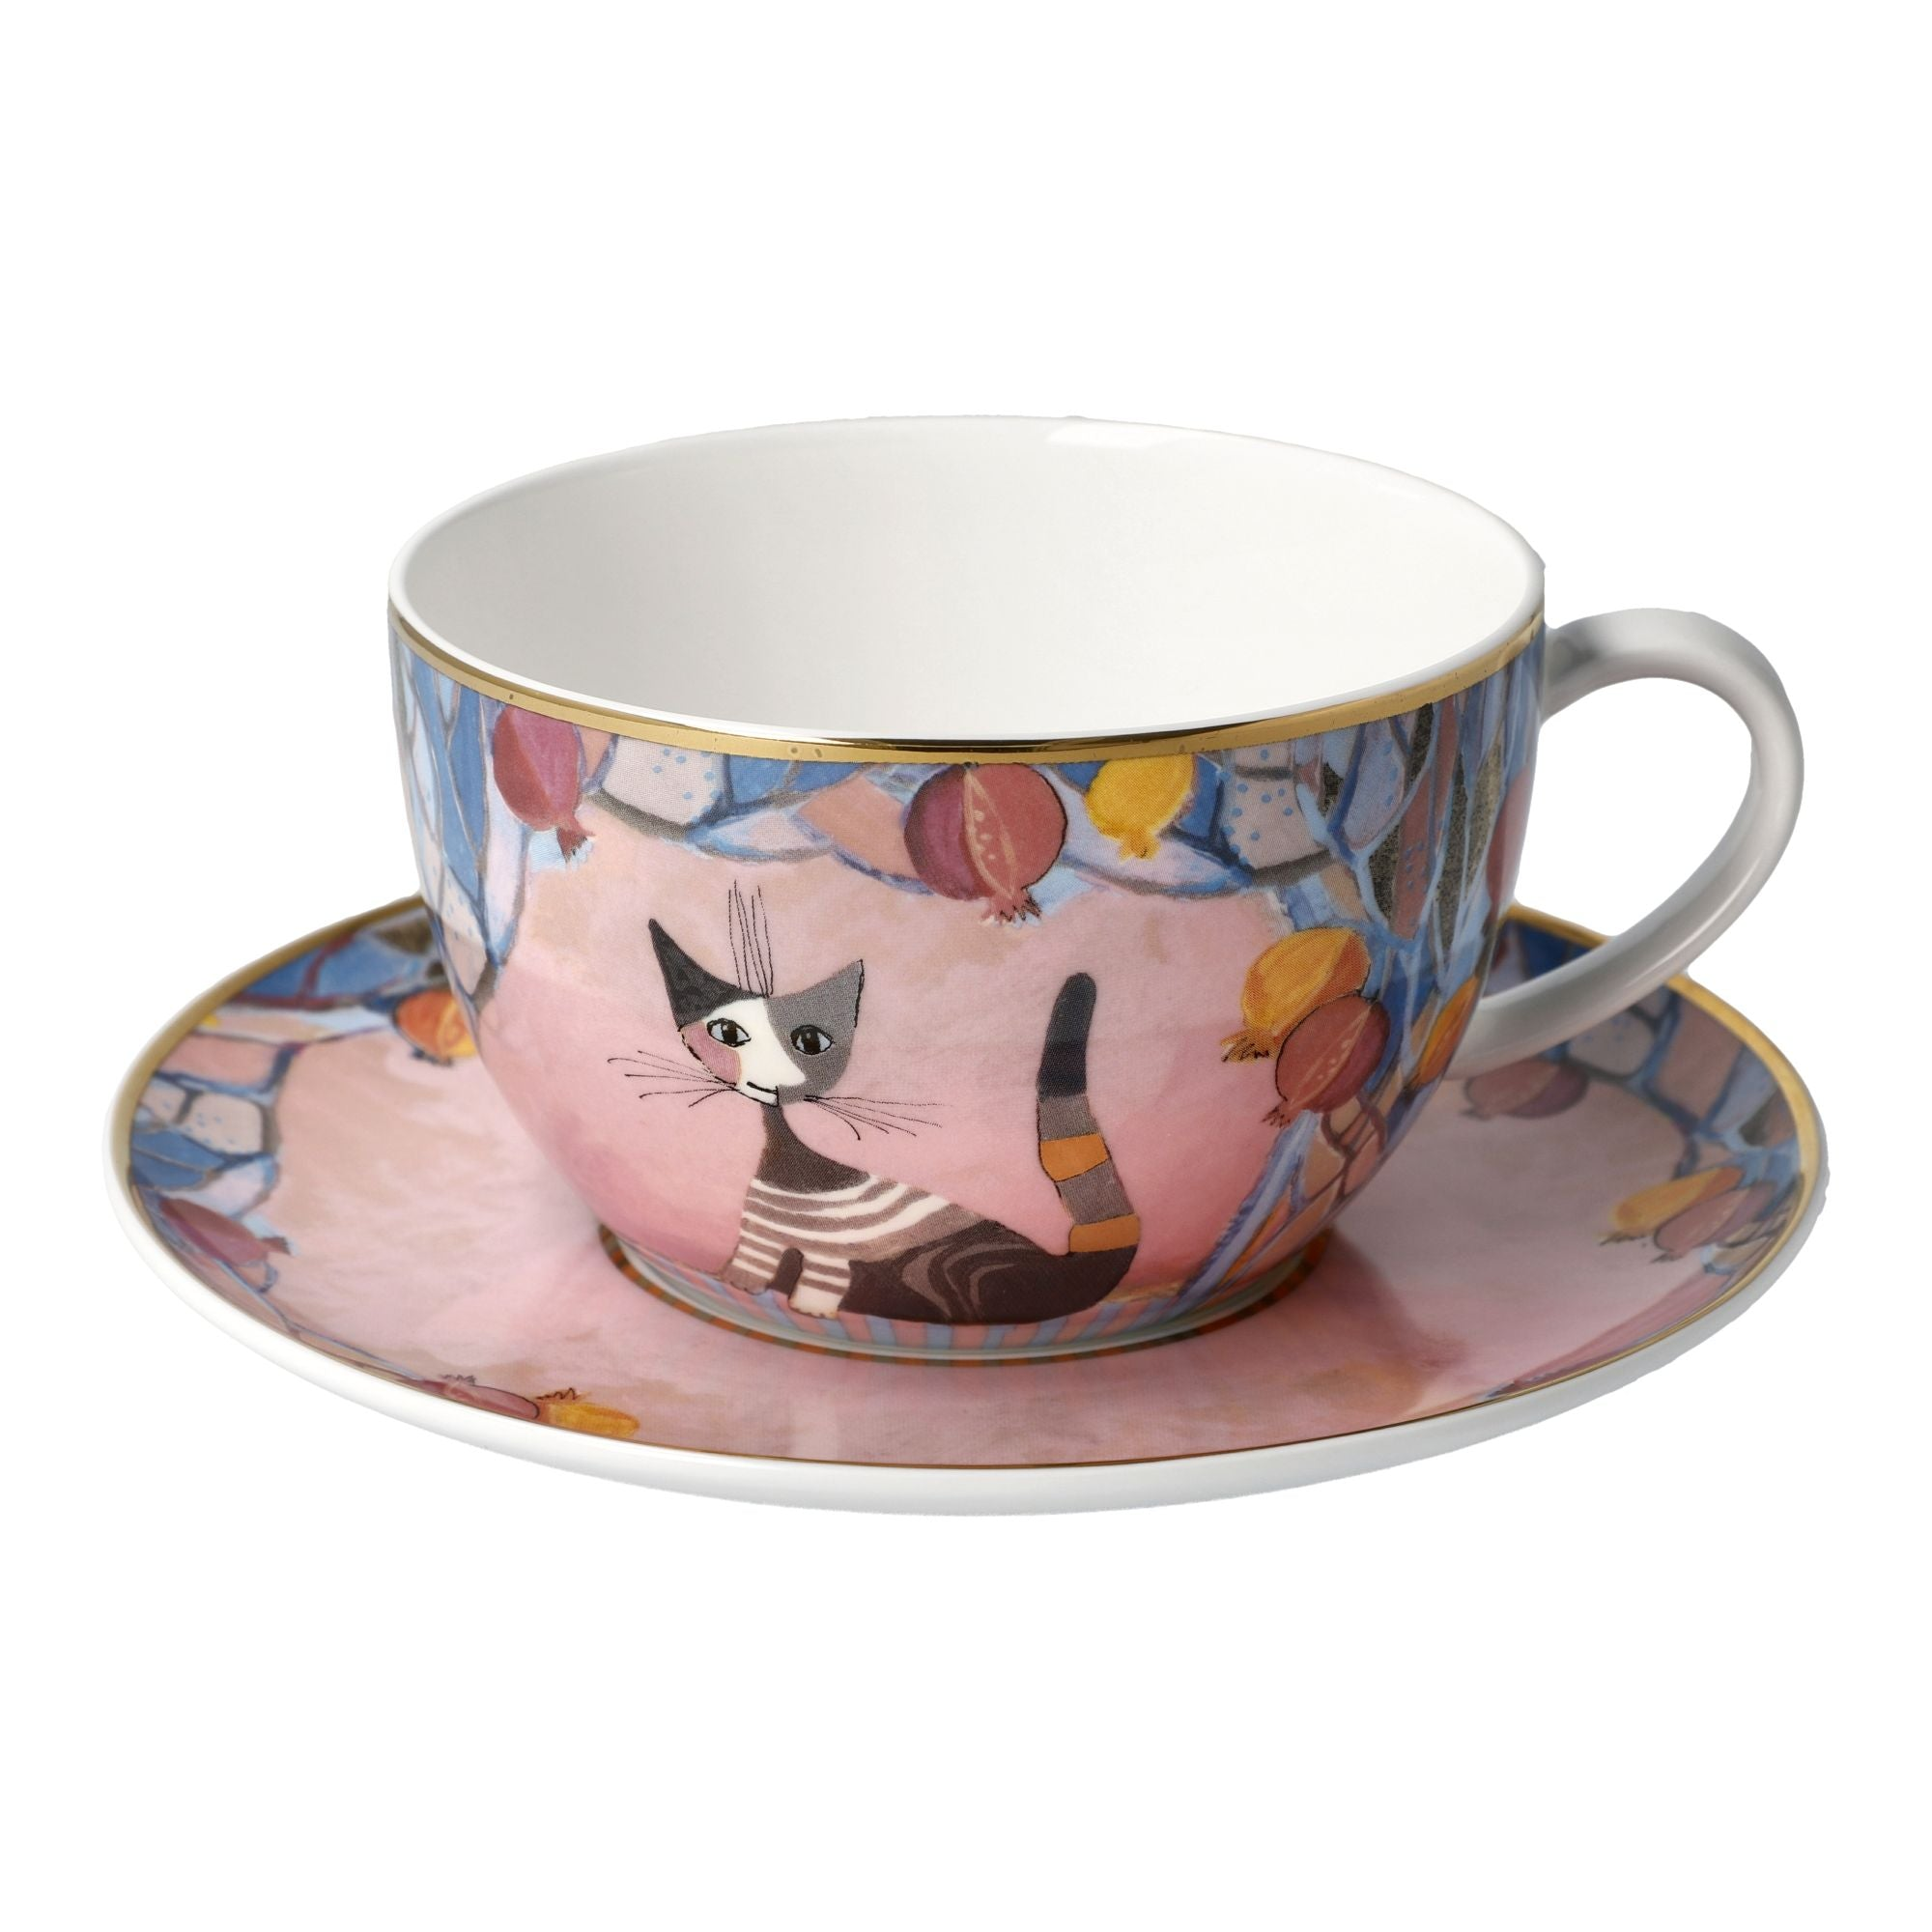 Melograni in festa cup & saucer